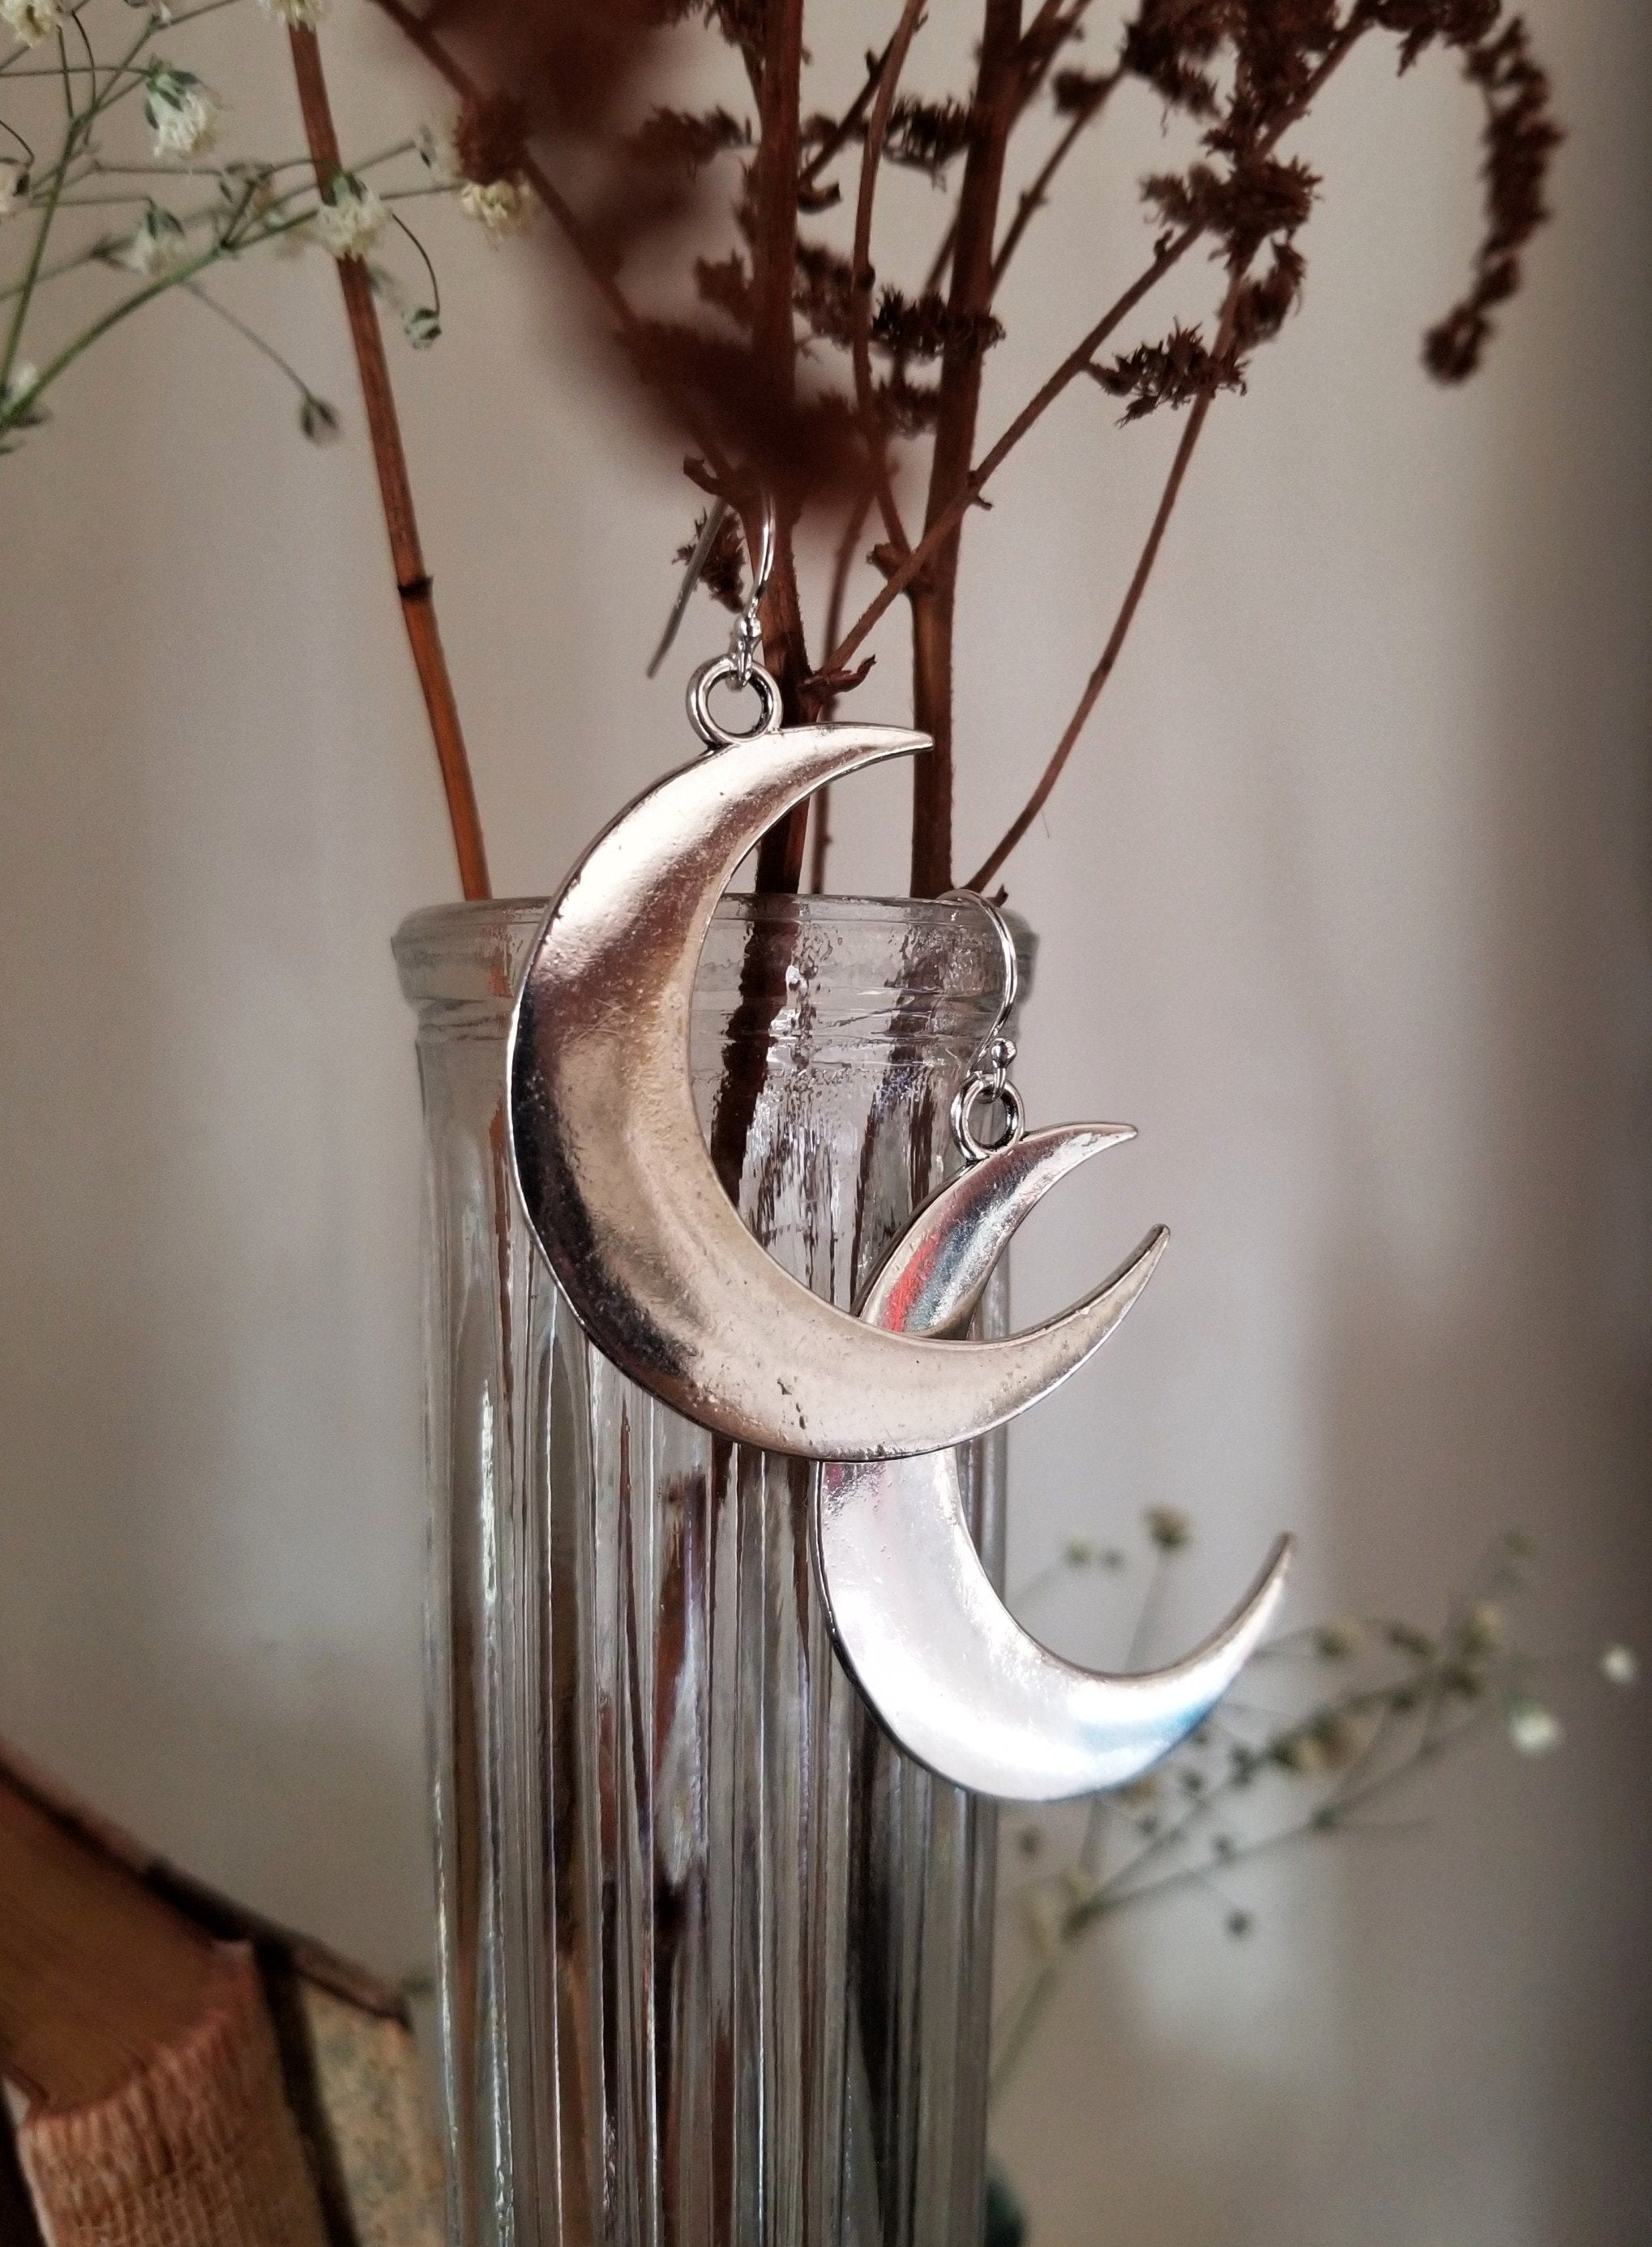 Large pewter waning crescent moon earrings with sterling silver ear wires